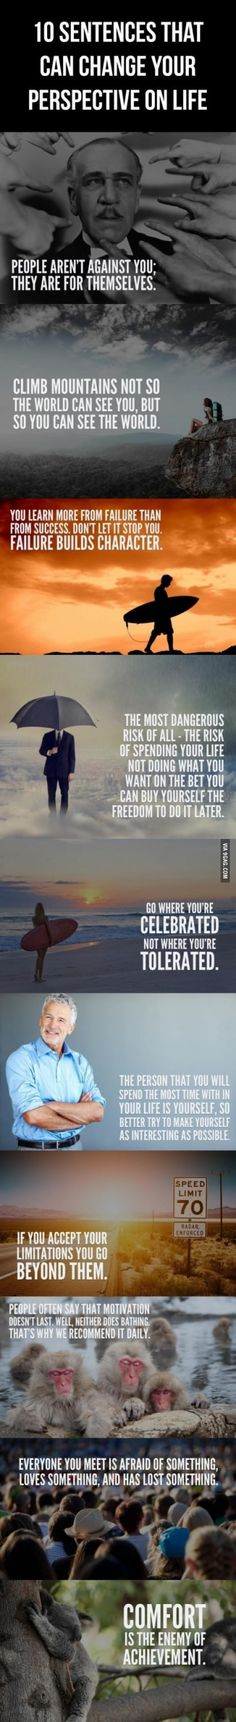 10 Powerful Sentences to Help Change Your Perspective on Life.